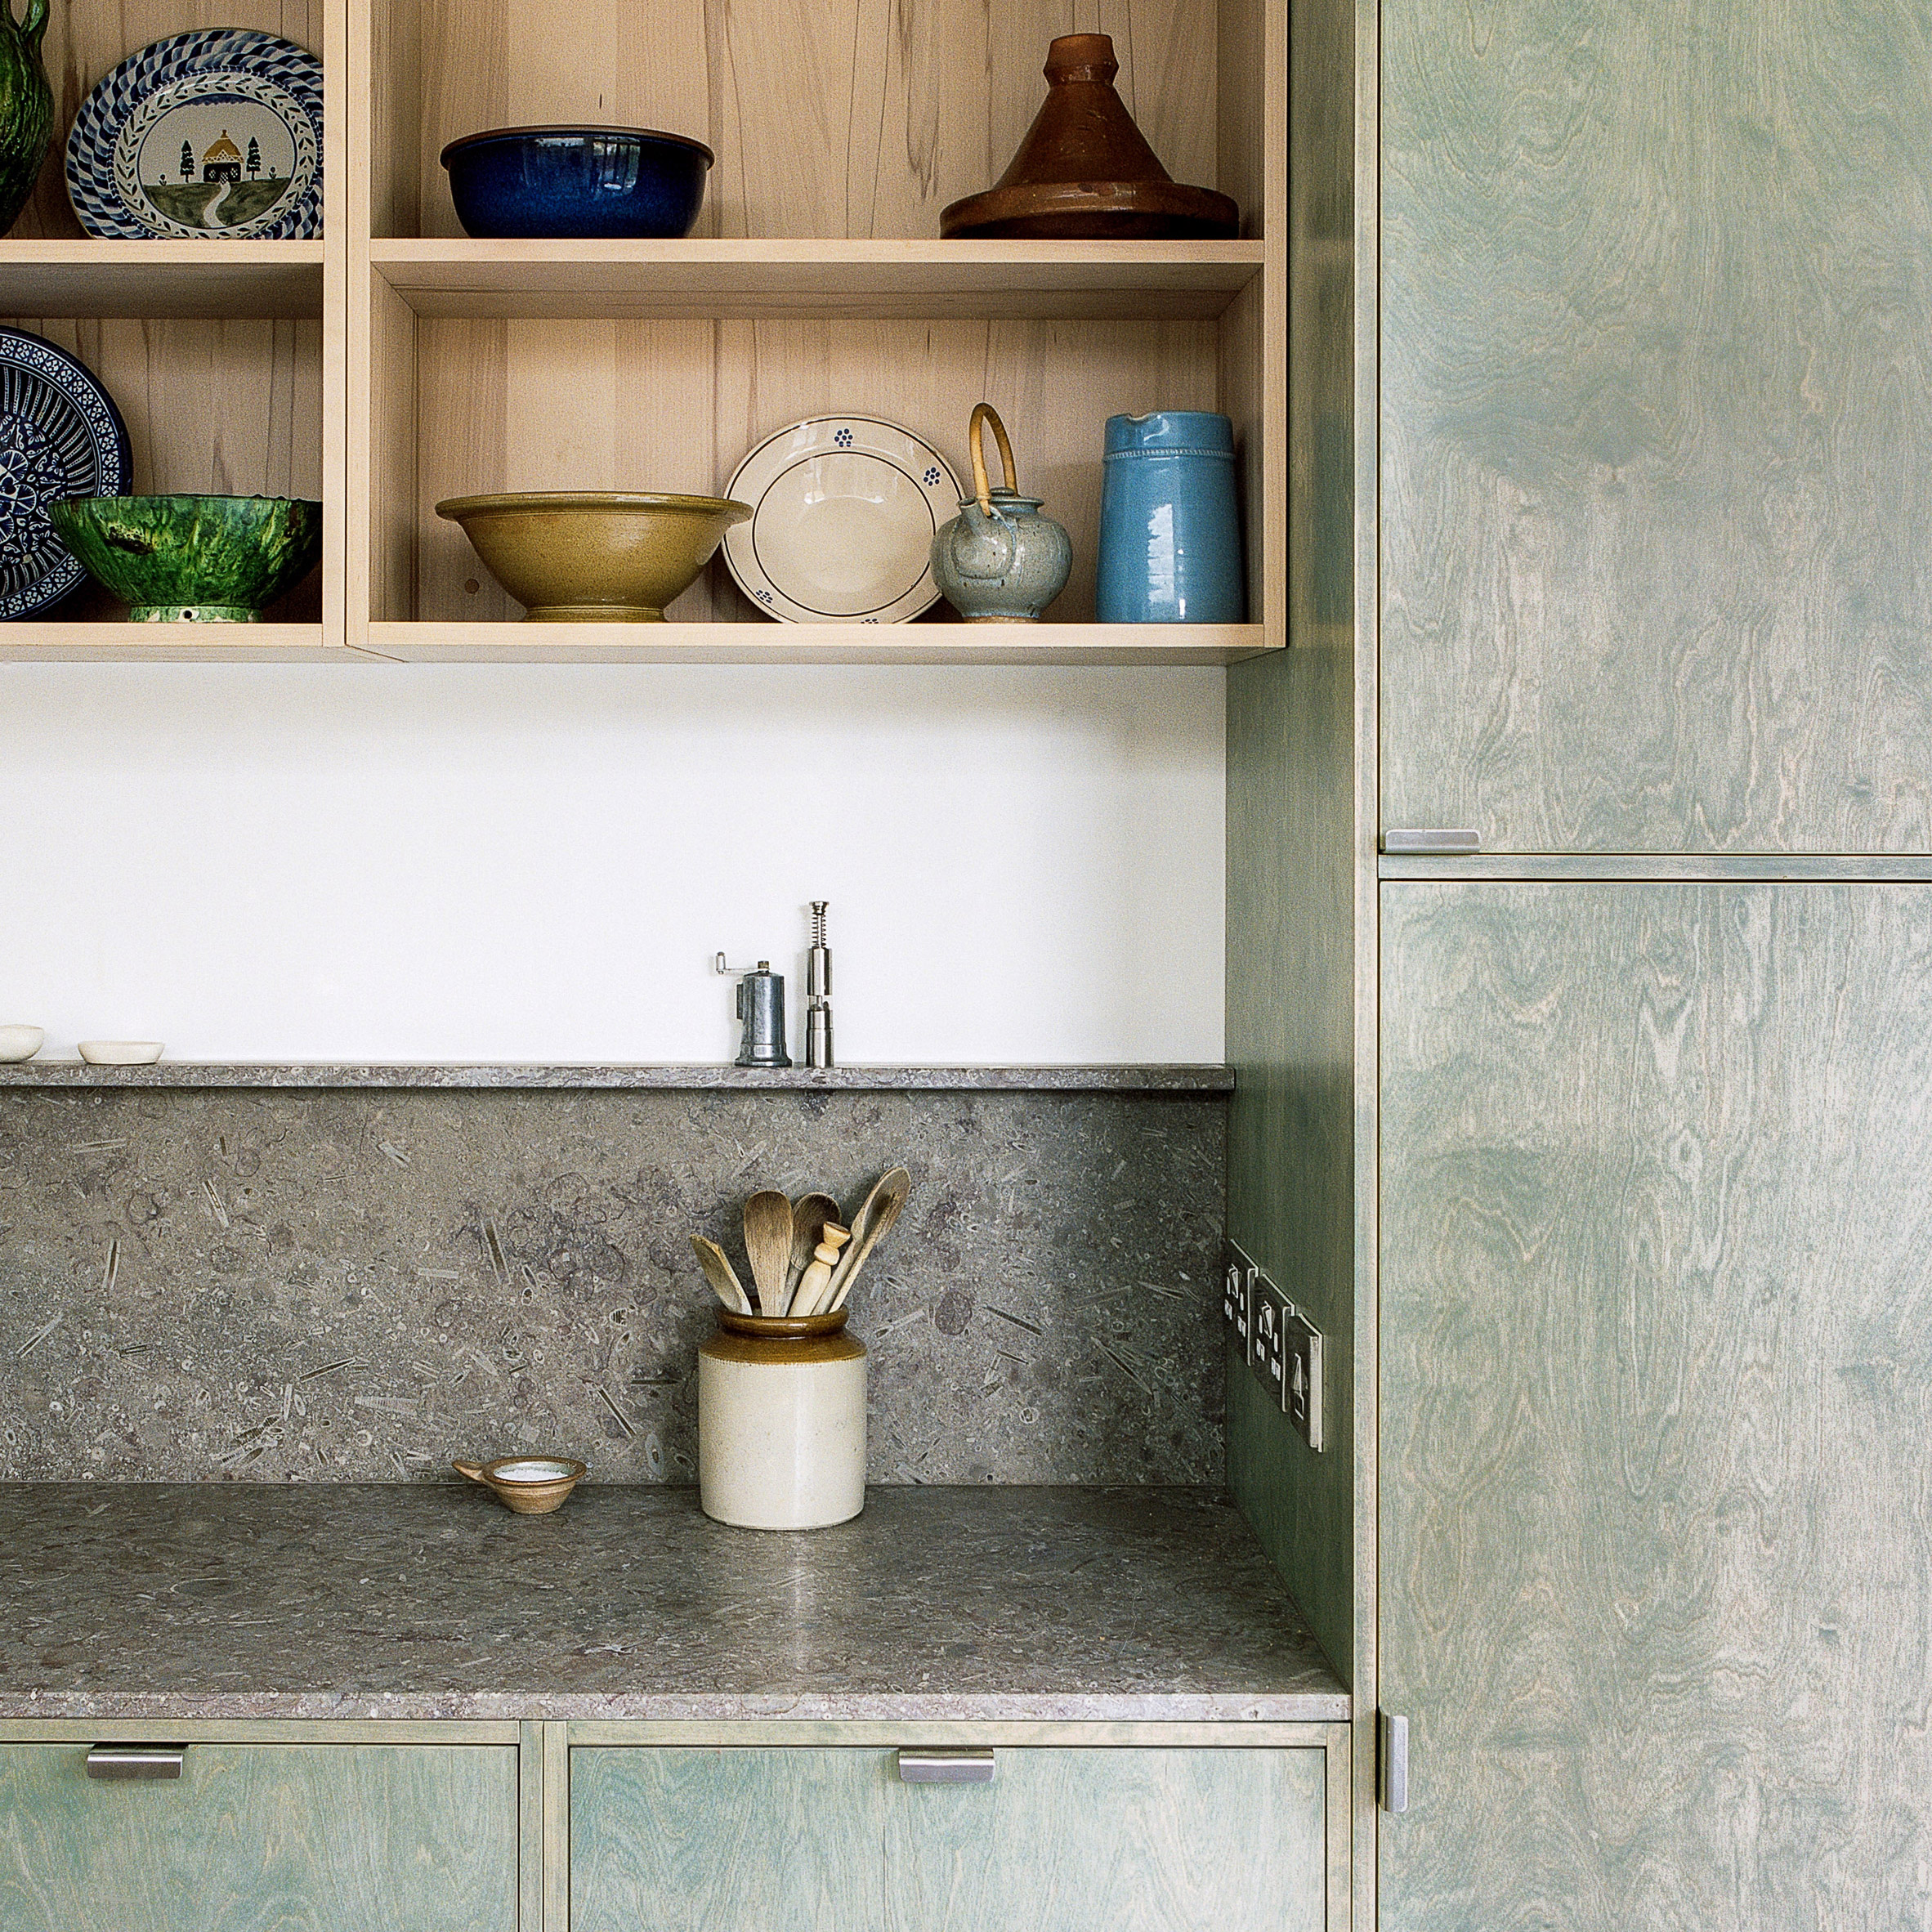 Wooden kitchens: Southgrove Road by From Works